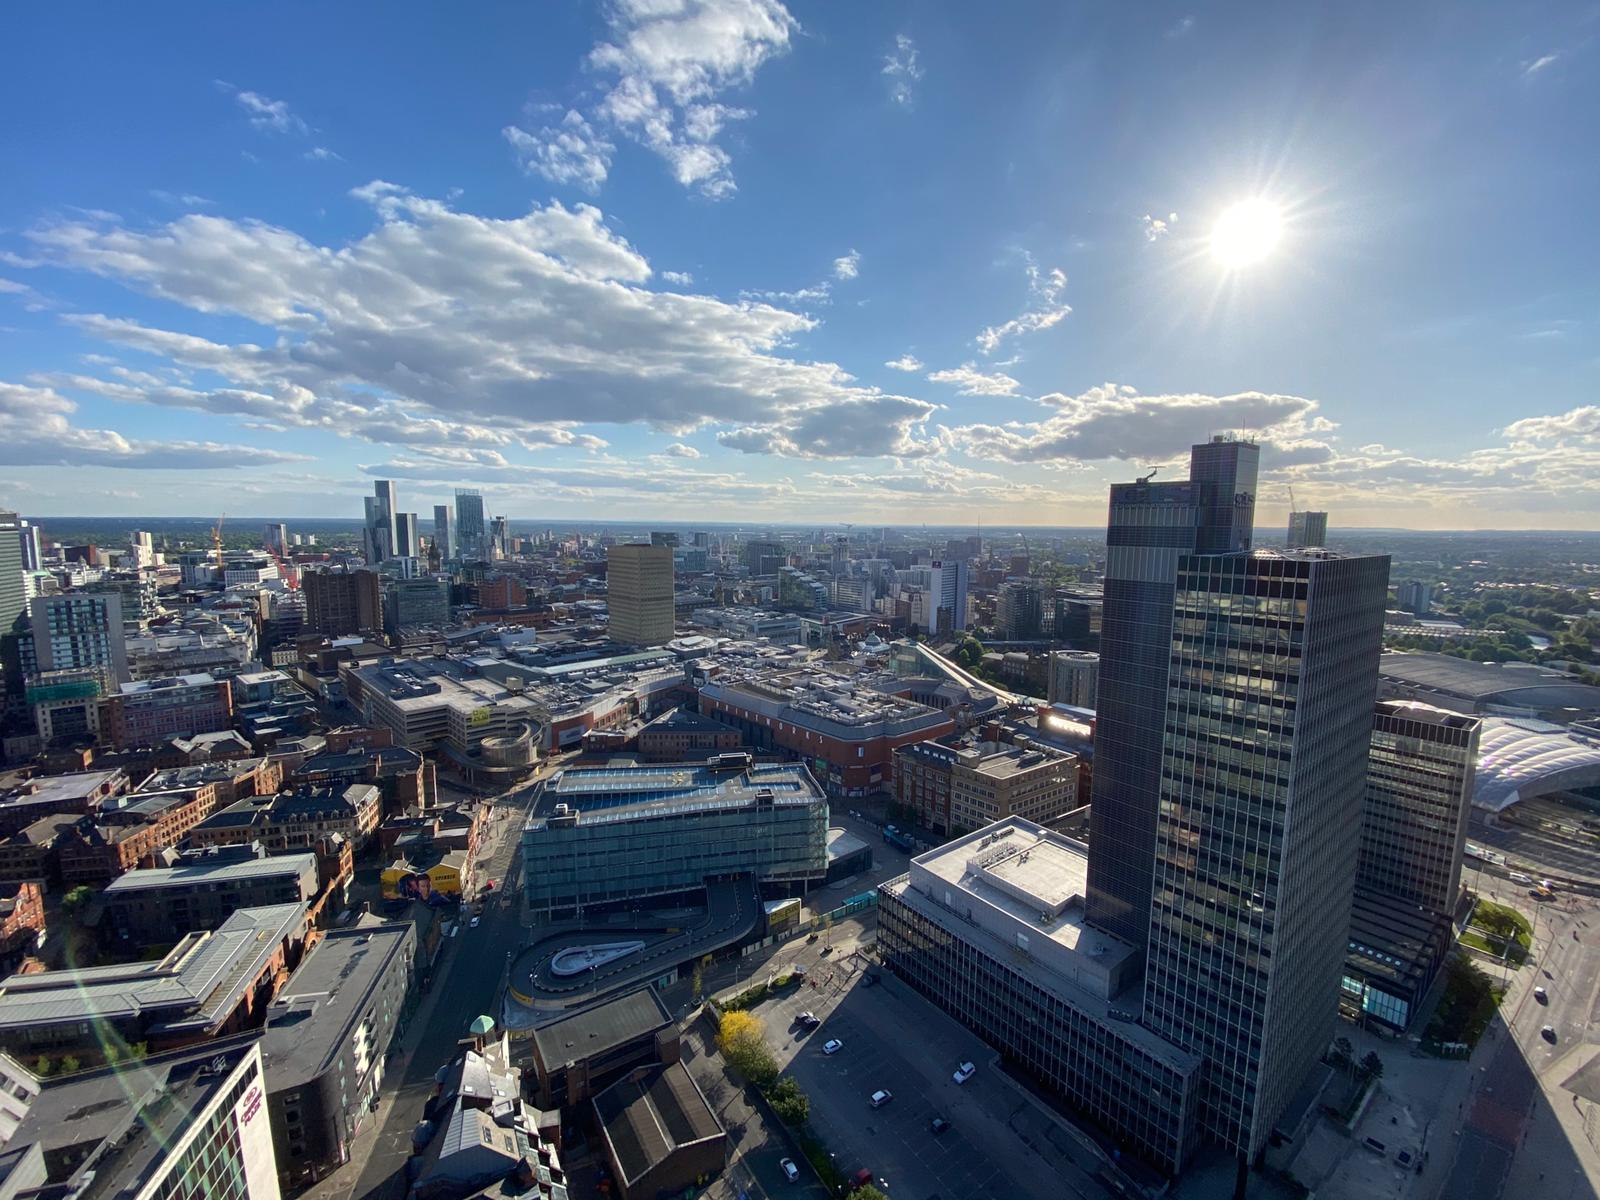 Cityscape of Manchester city centre